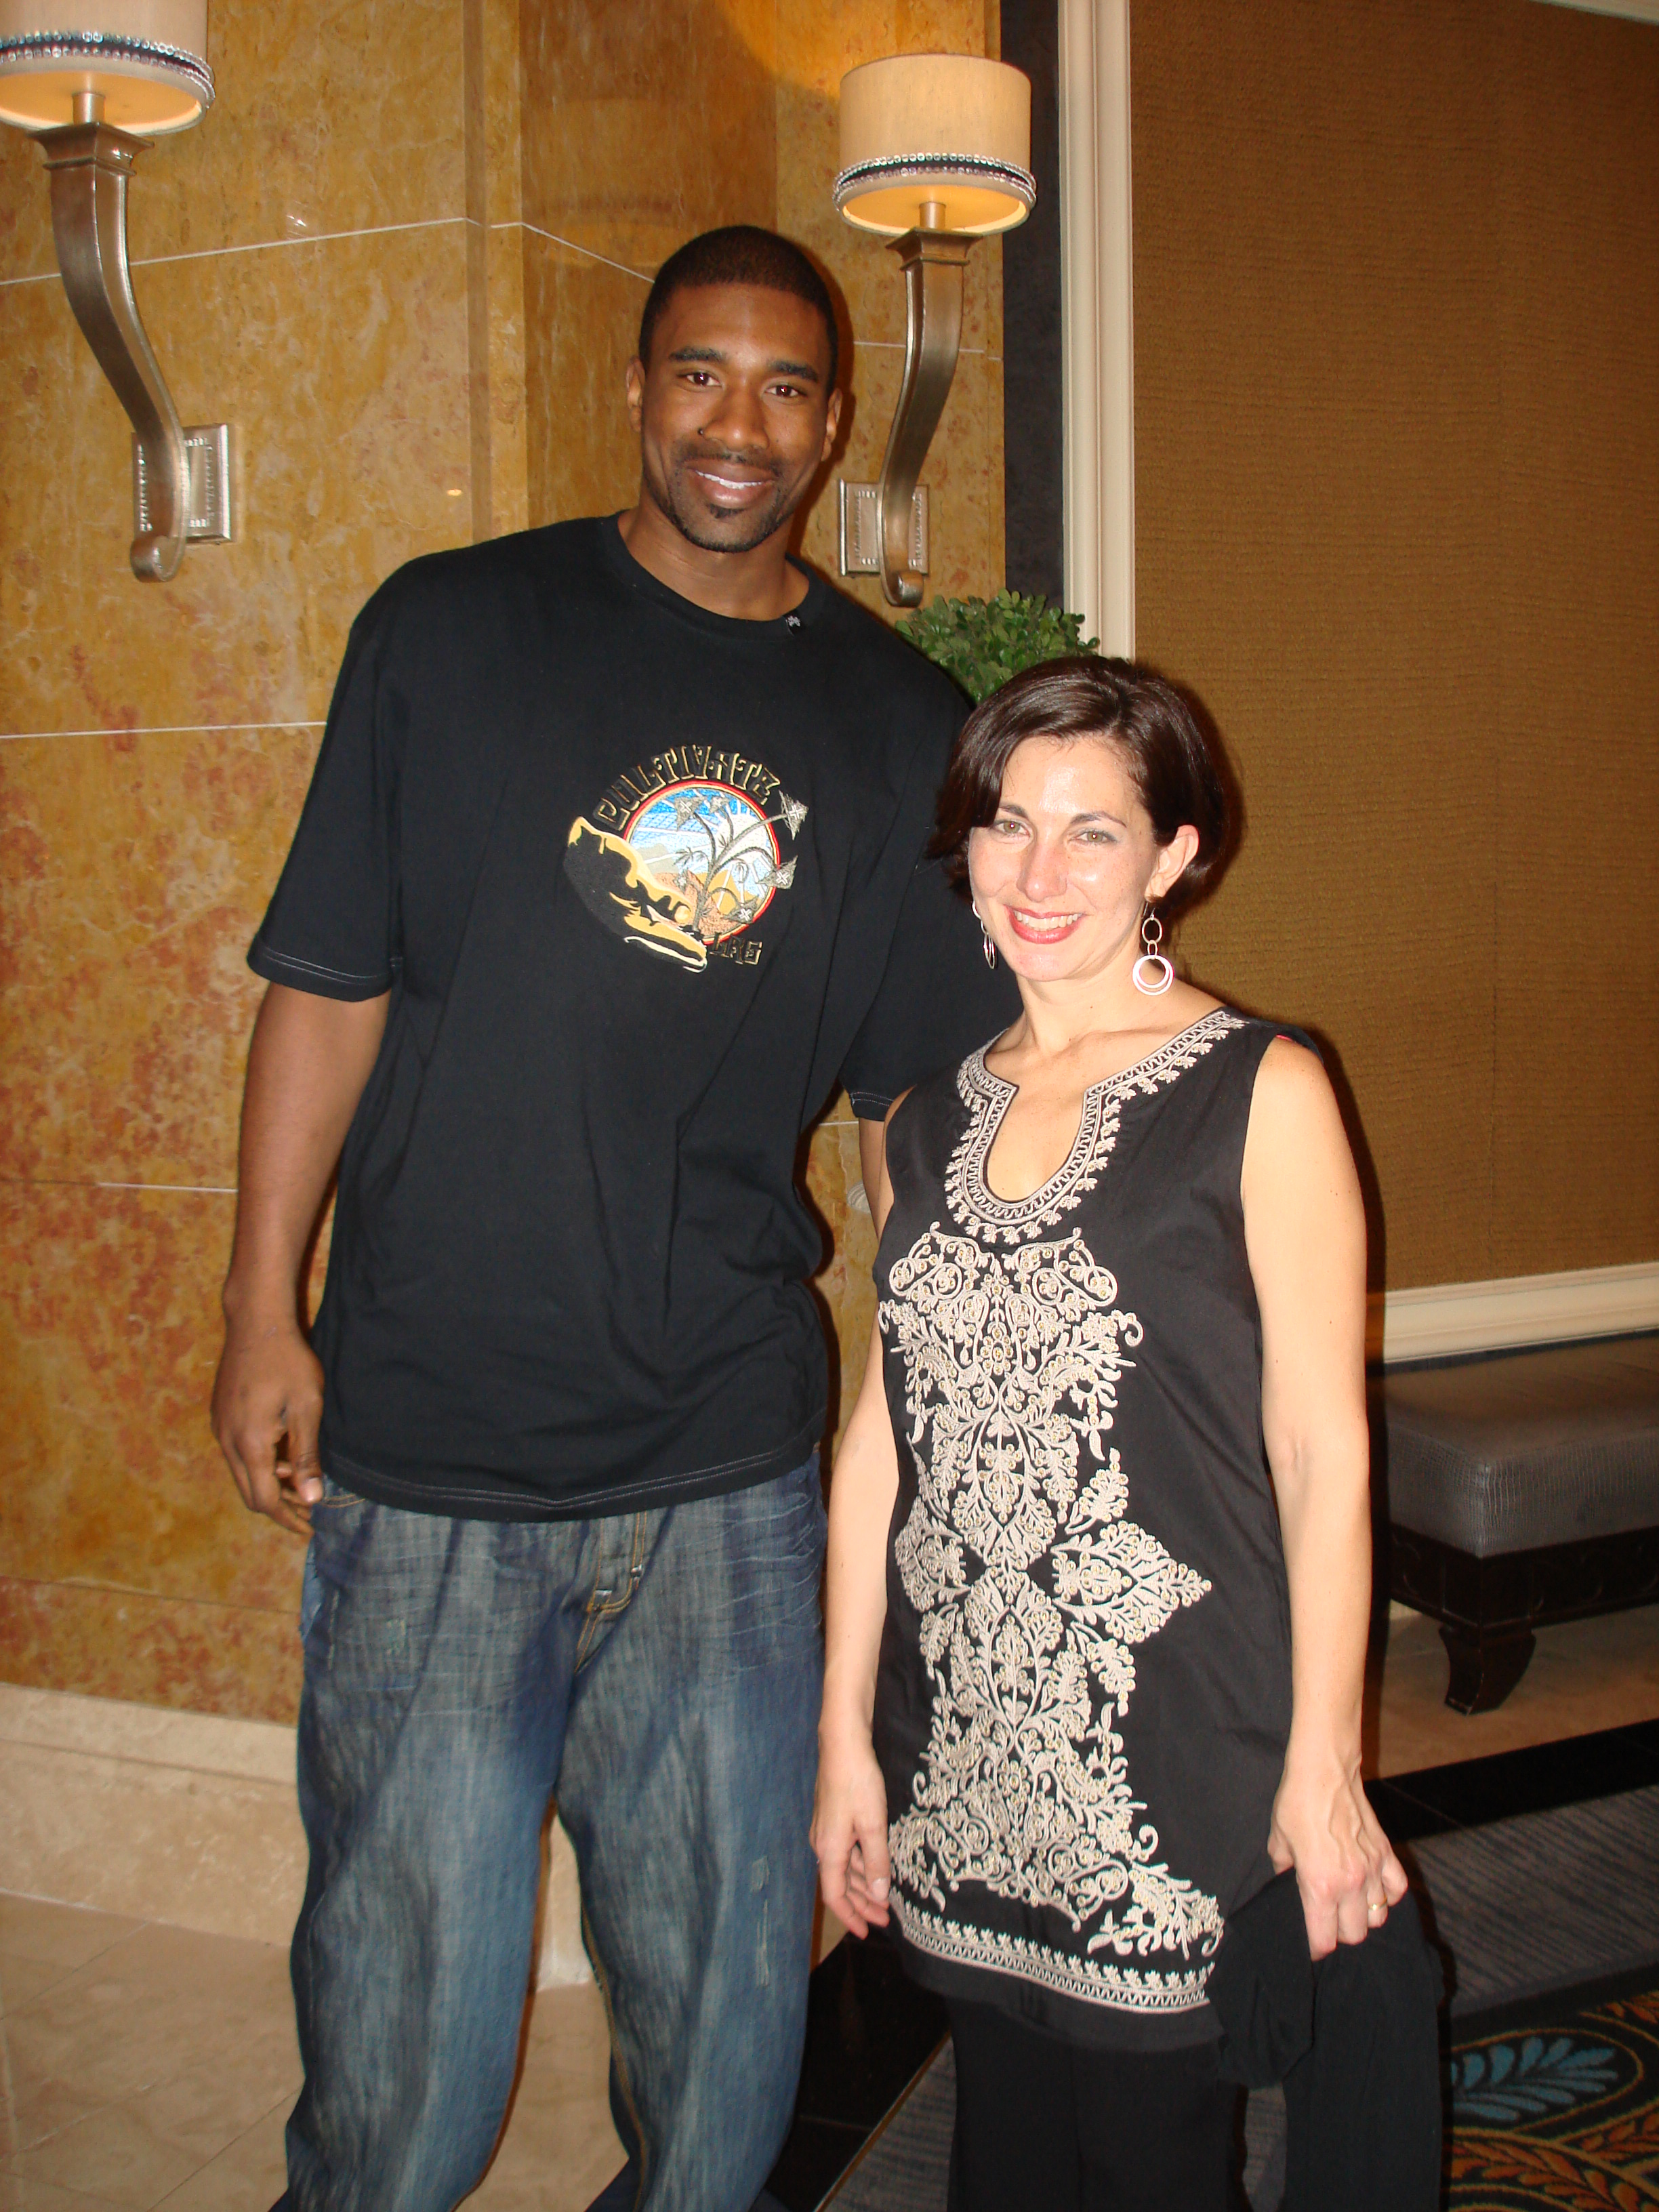 Leon Powe and my wife